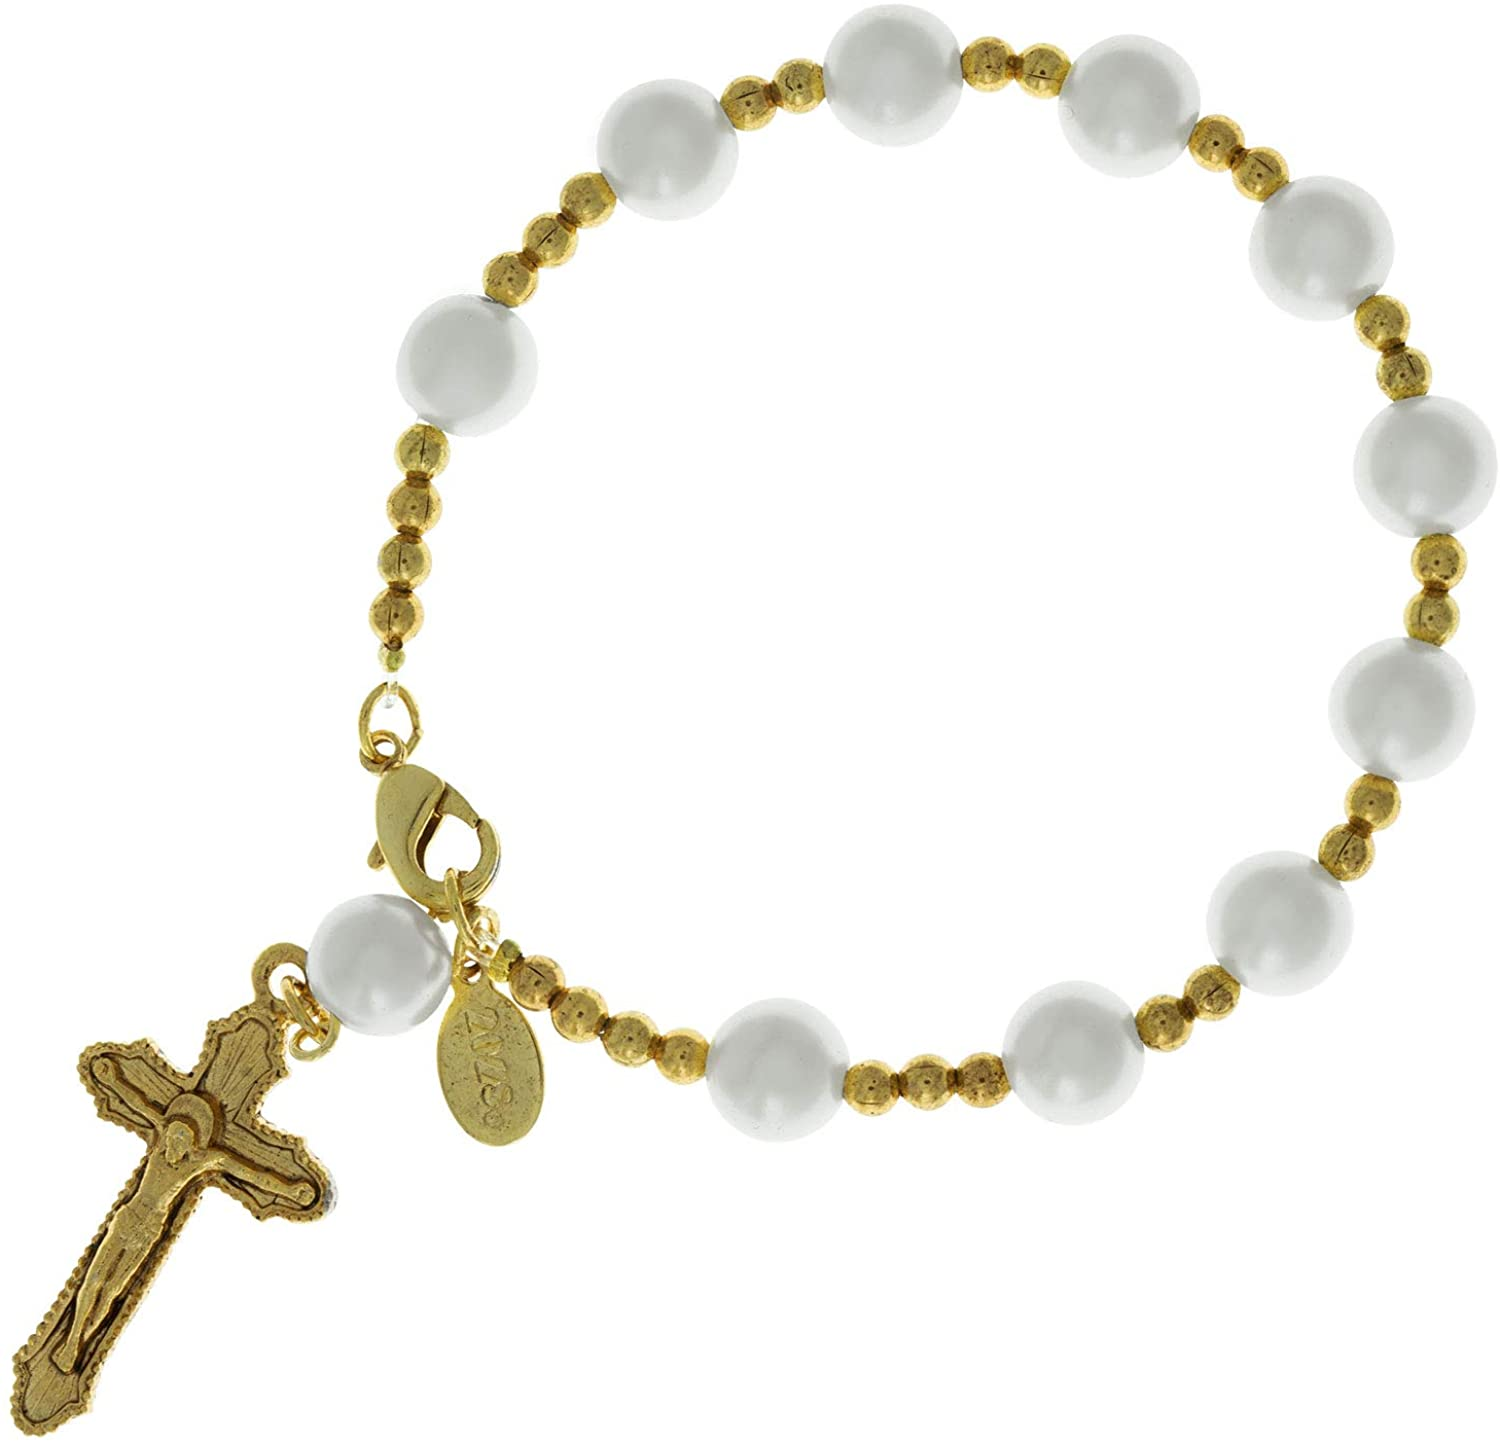 Symbols of Faith 14K Gold-Dipped Simulated Pearl Rosary Bracelet